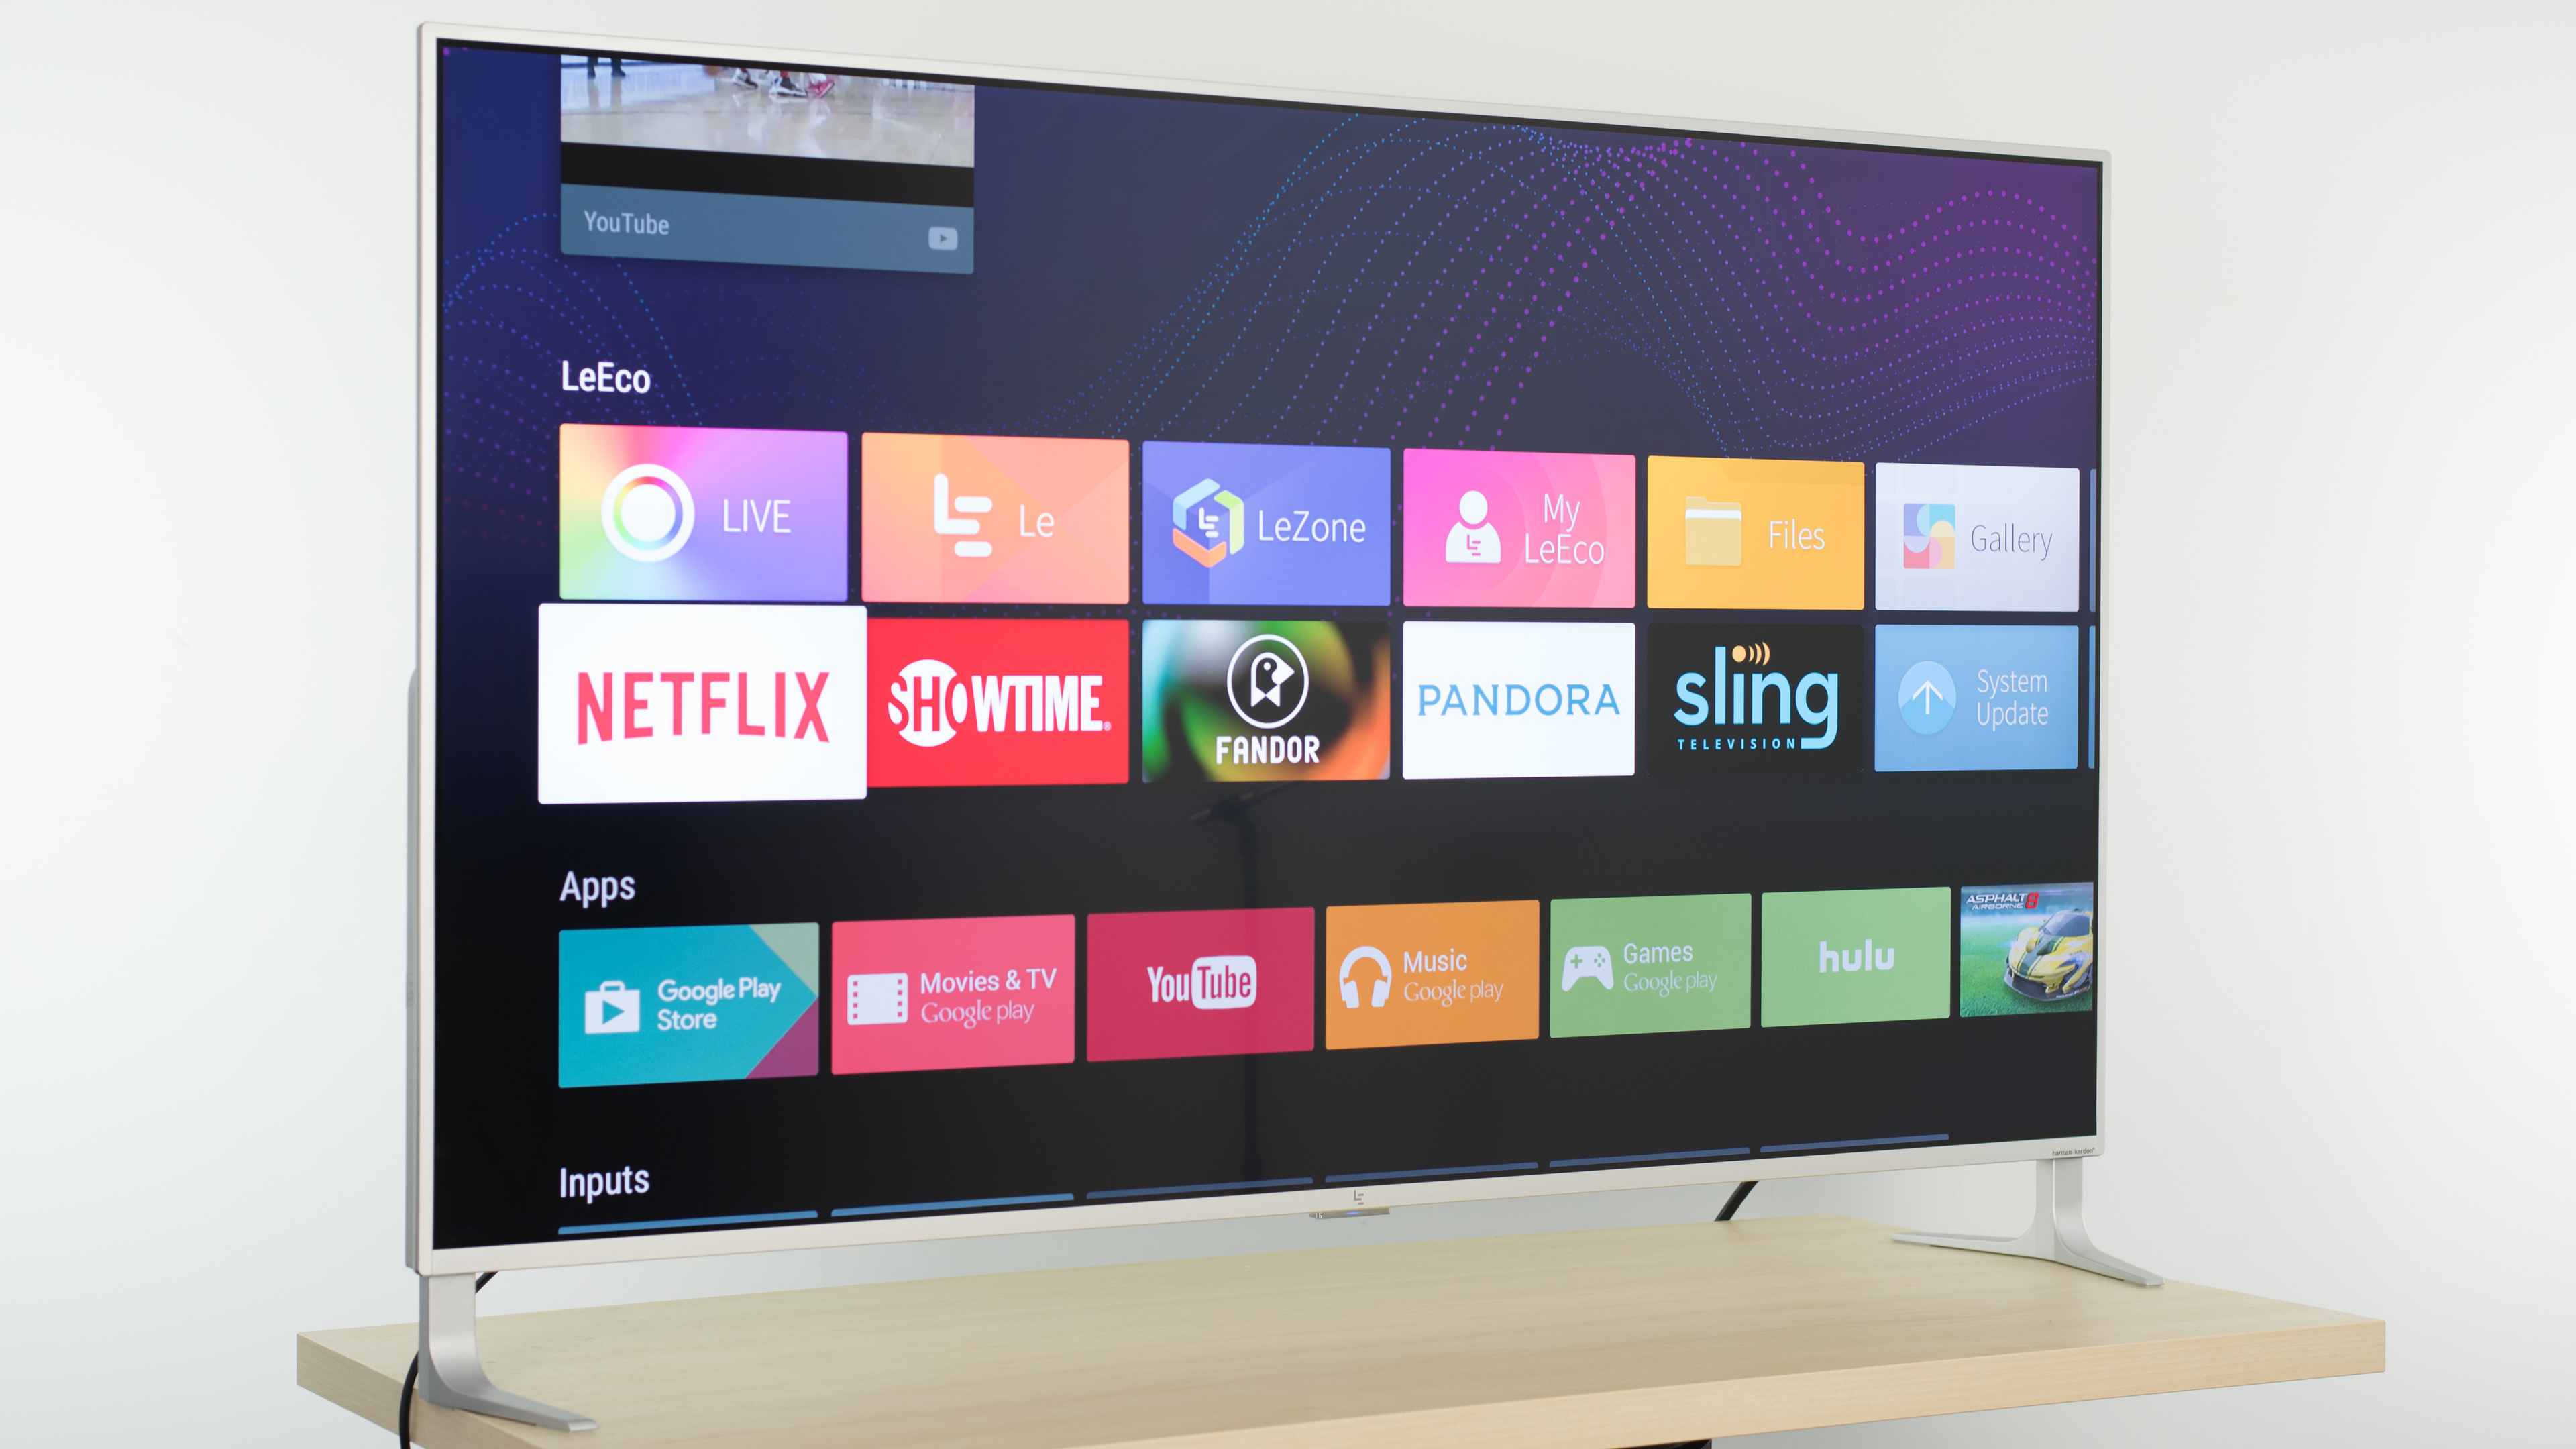 Leeco Television Review